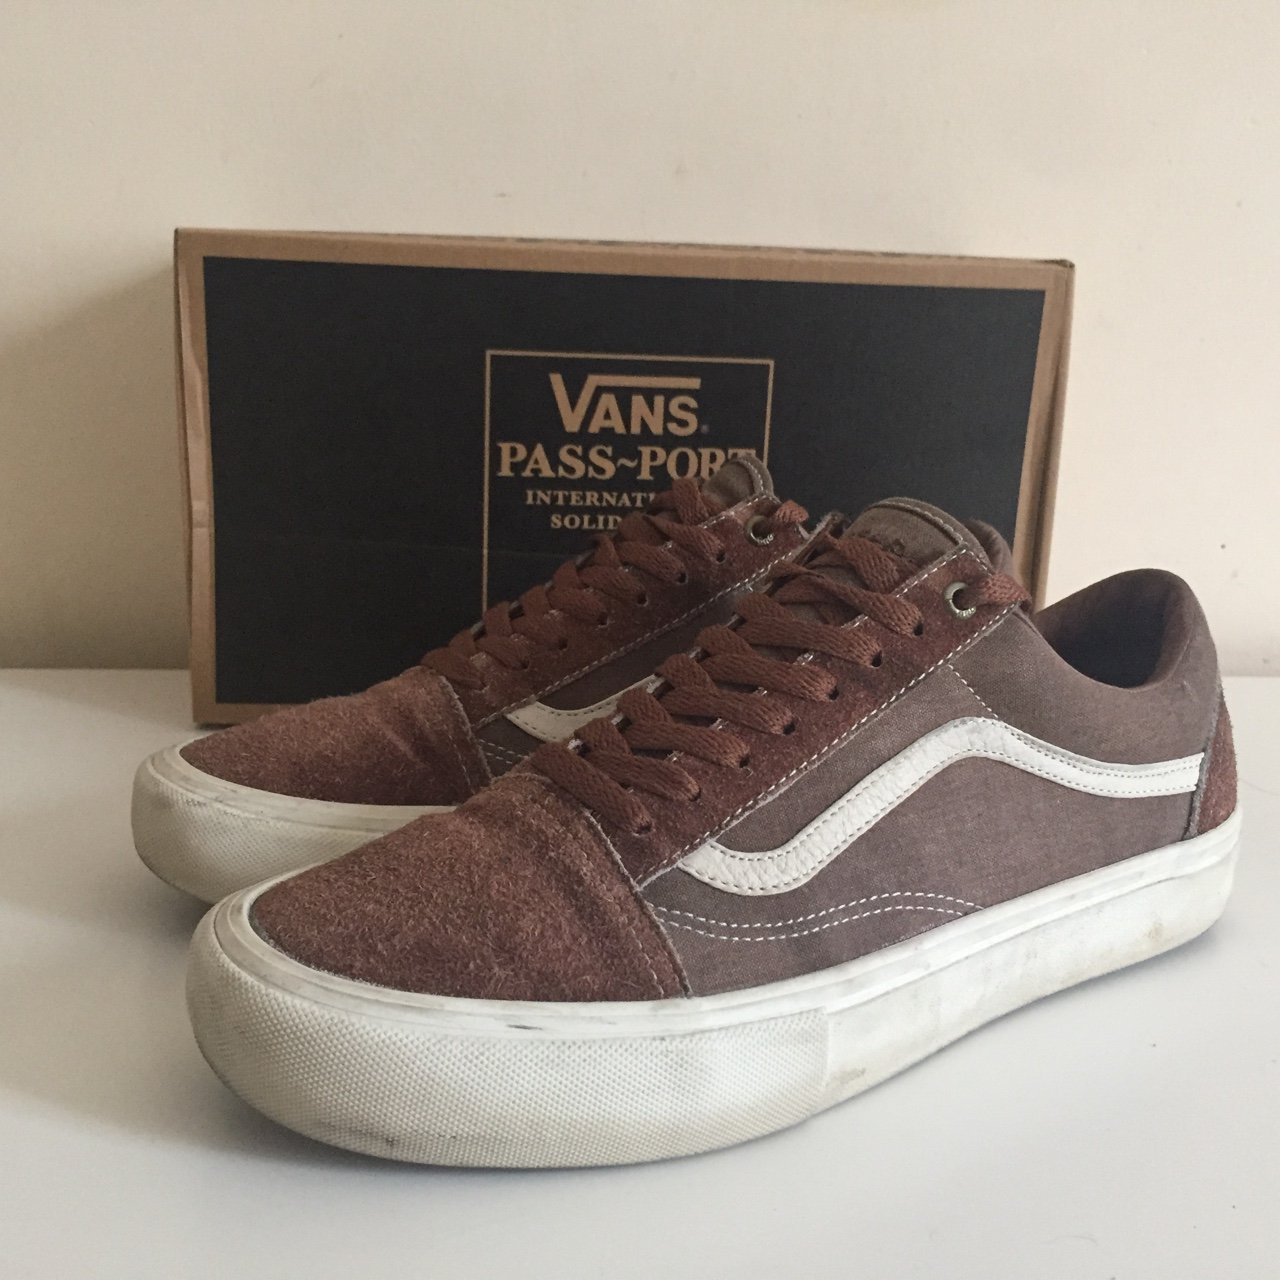 ff40b4cb80 Vans x Passport oldskool pro size 10 shoes bought back in of - Depop